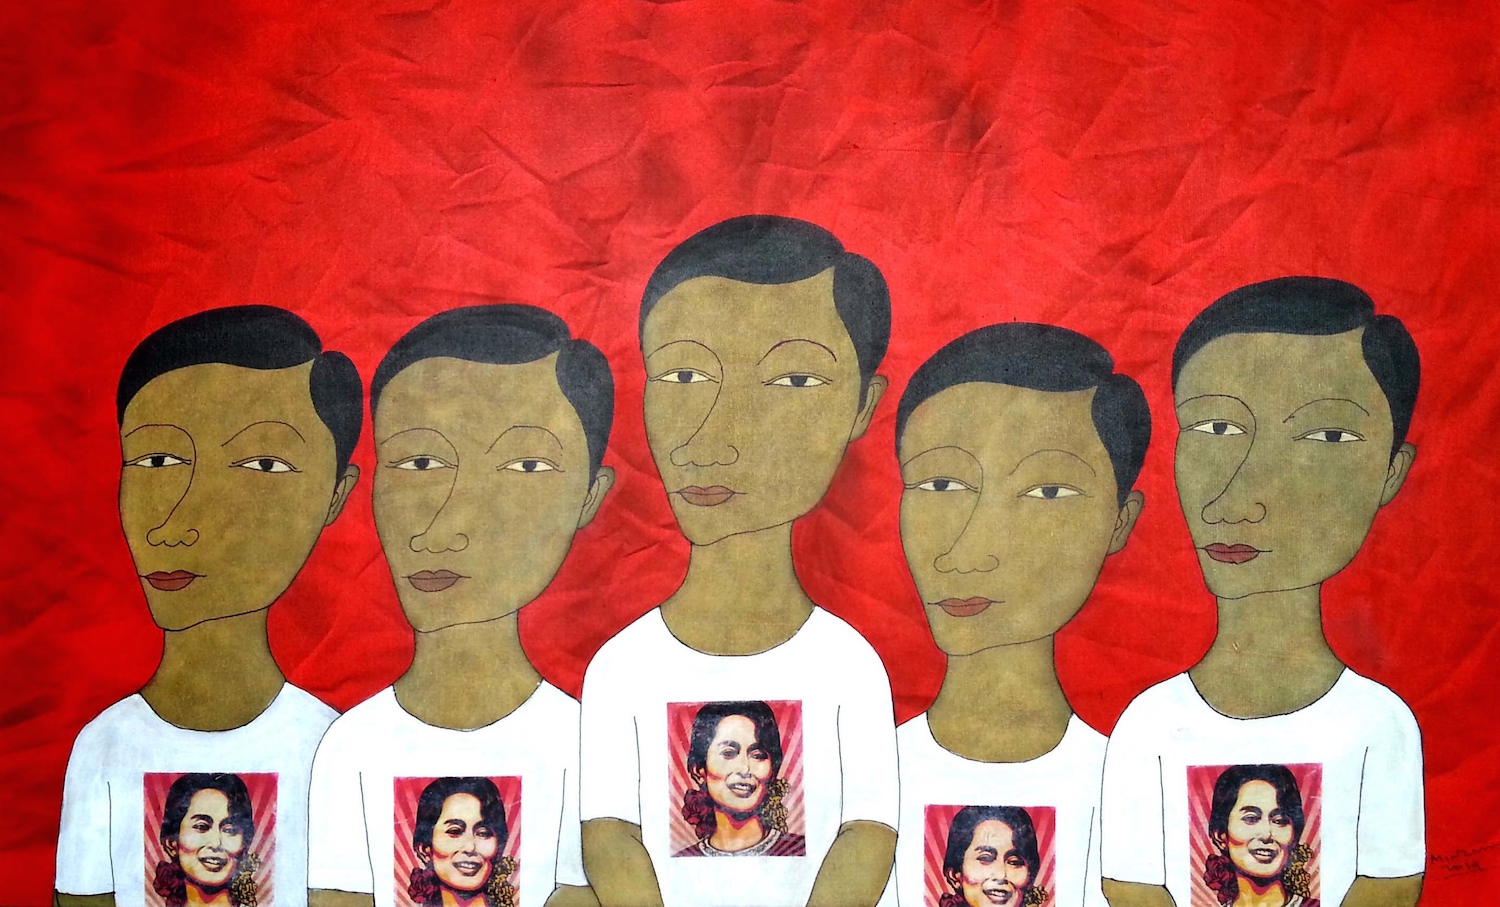 Min Zaw, 'The Loss of Identity', 2014, acrylic on canvas, 92 x 157cm. Image courtesy of Intersections Gallery.